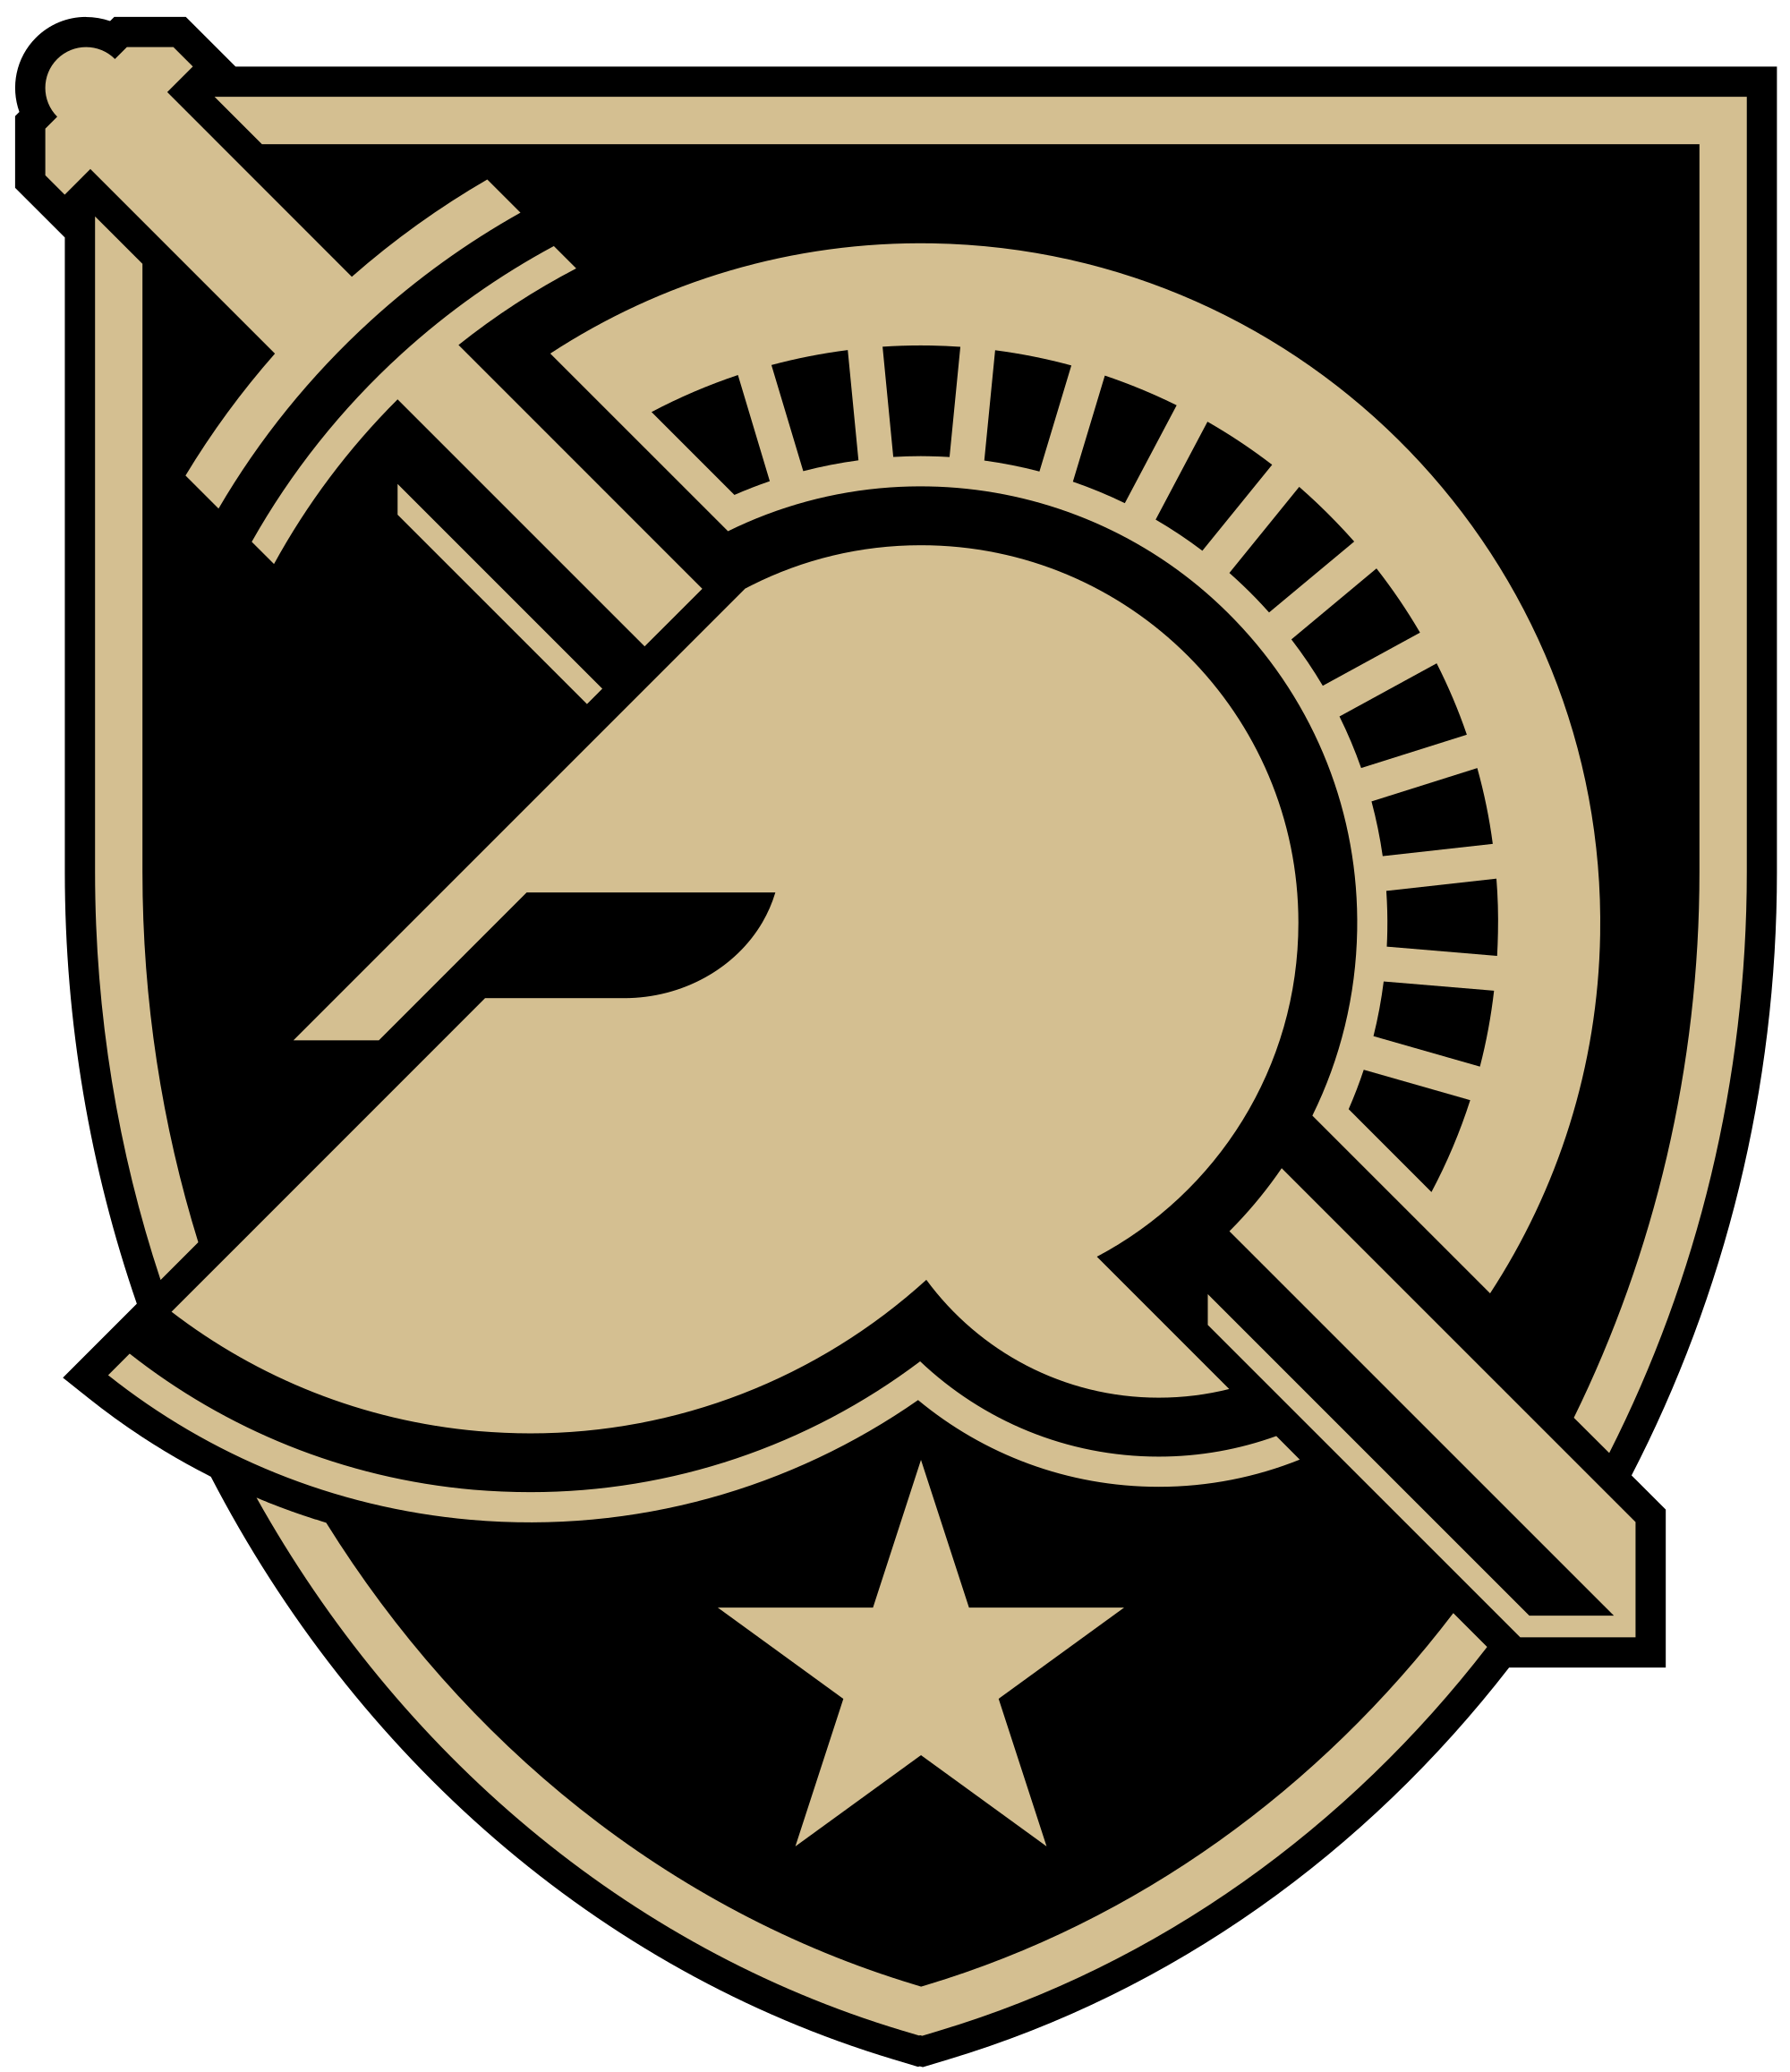 Free clipart army vs navy football vector freeuse download File:Army West Point logo.svg - Wikimedia Commons vector freeuse download